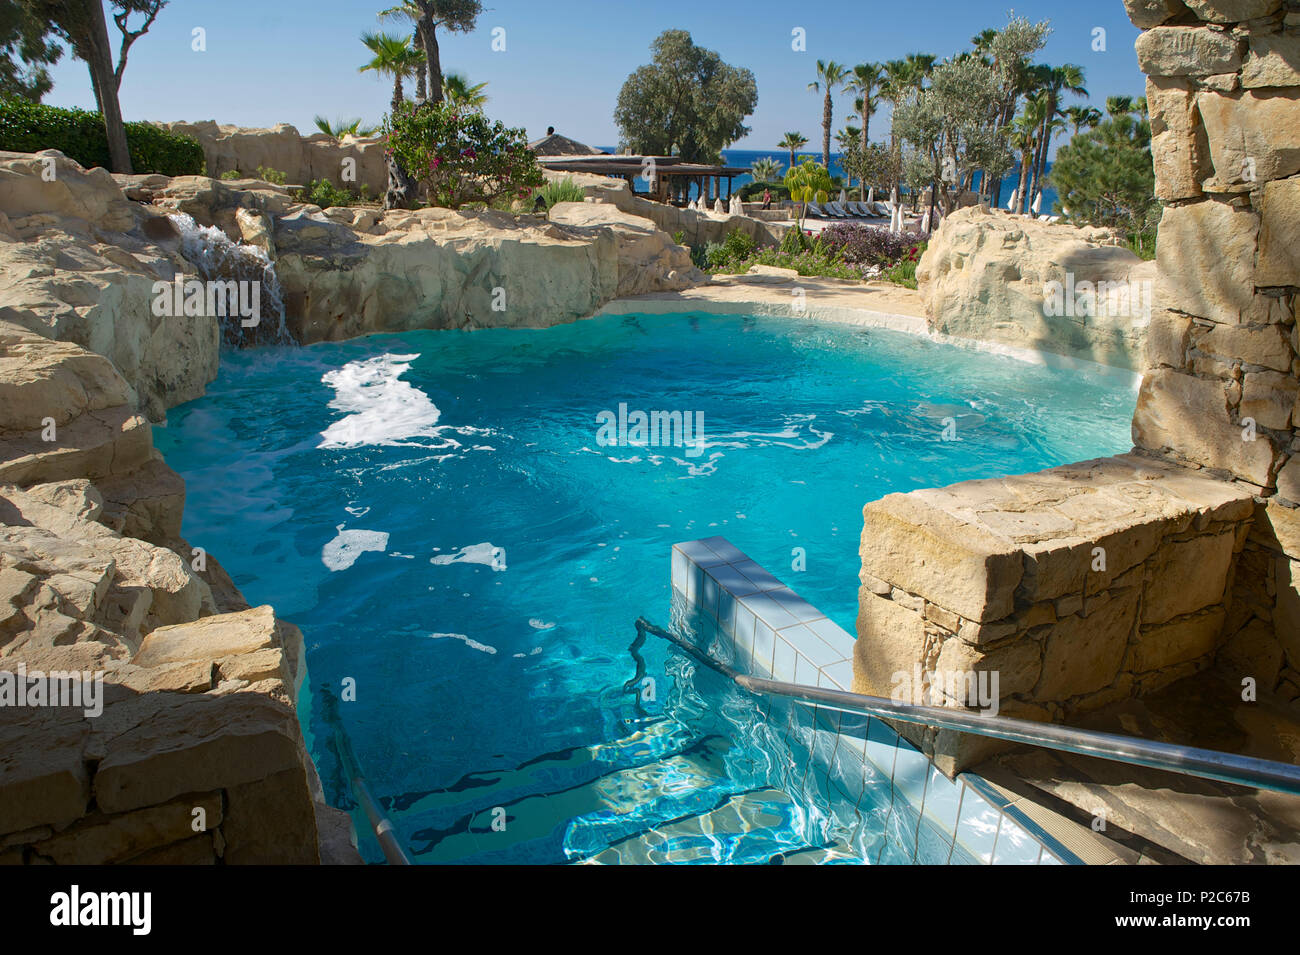 Pool in artificial rocks in the spa at the Le Meridien Hotel, Limassol, Limassol District, Cyprus Stock Photo